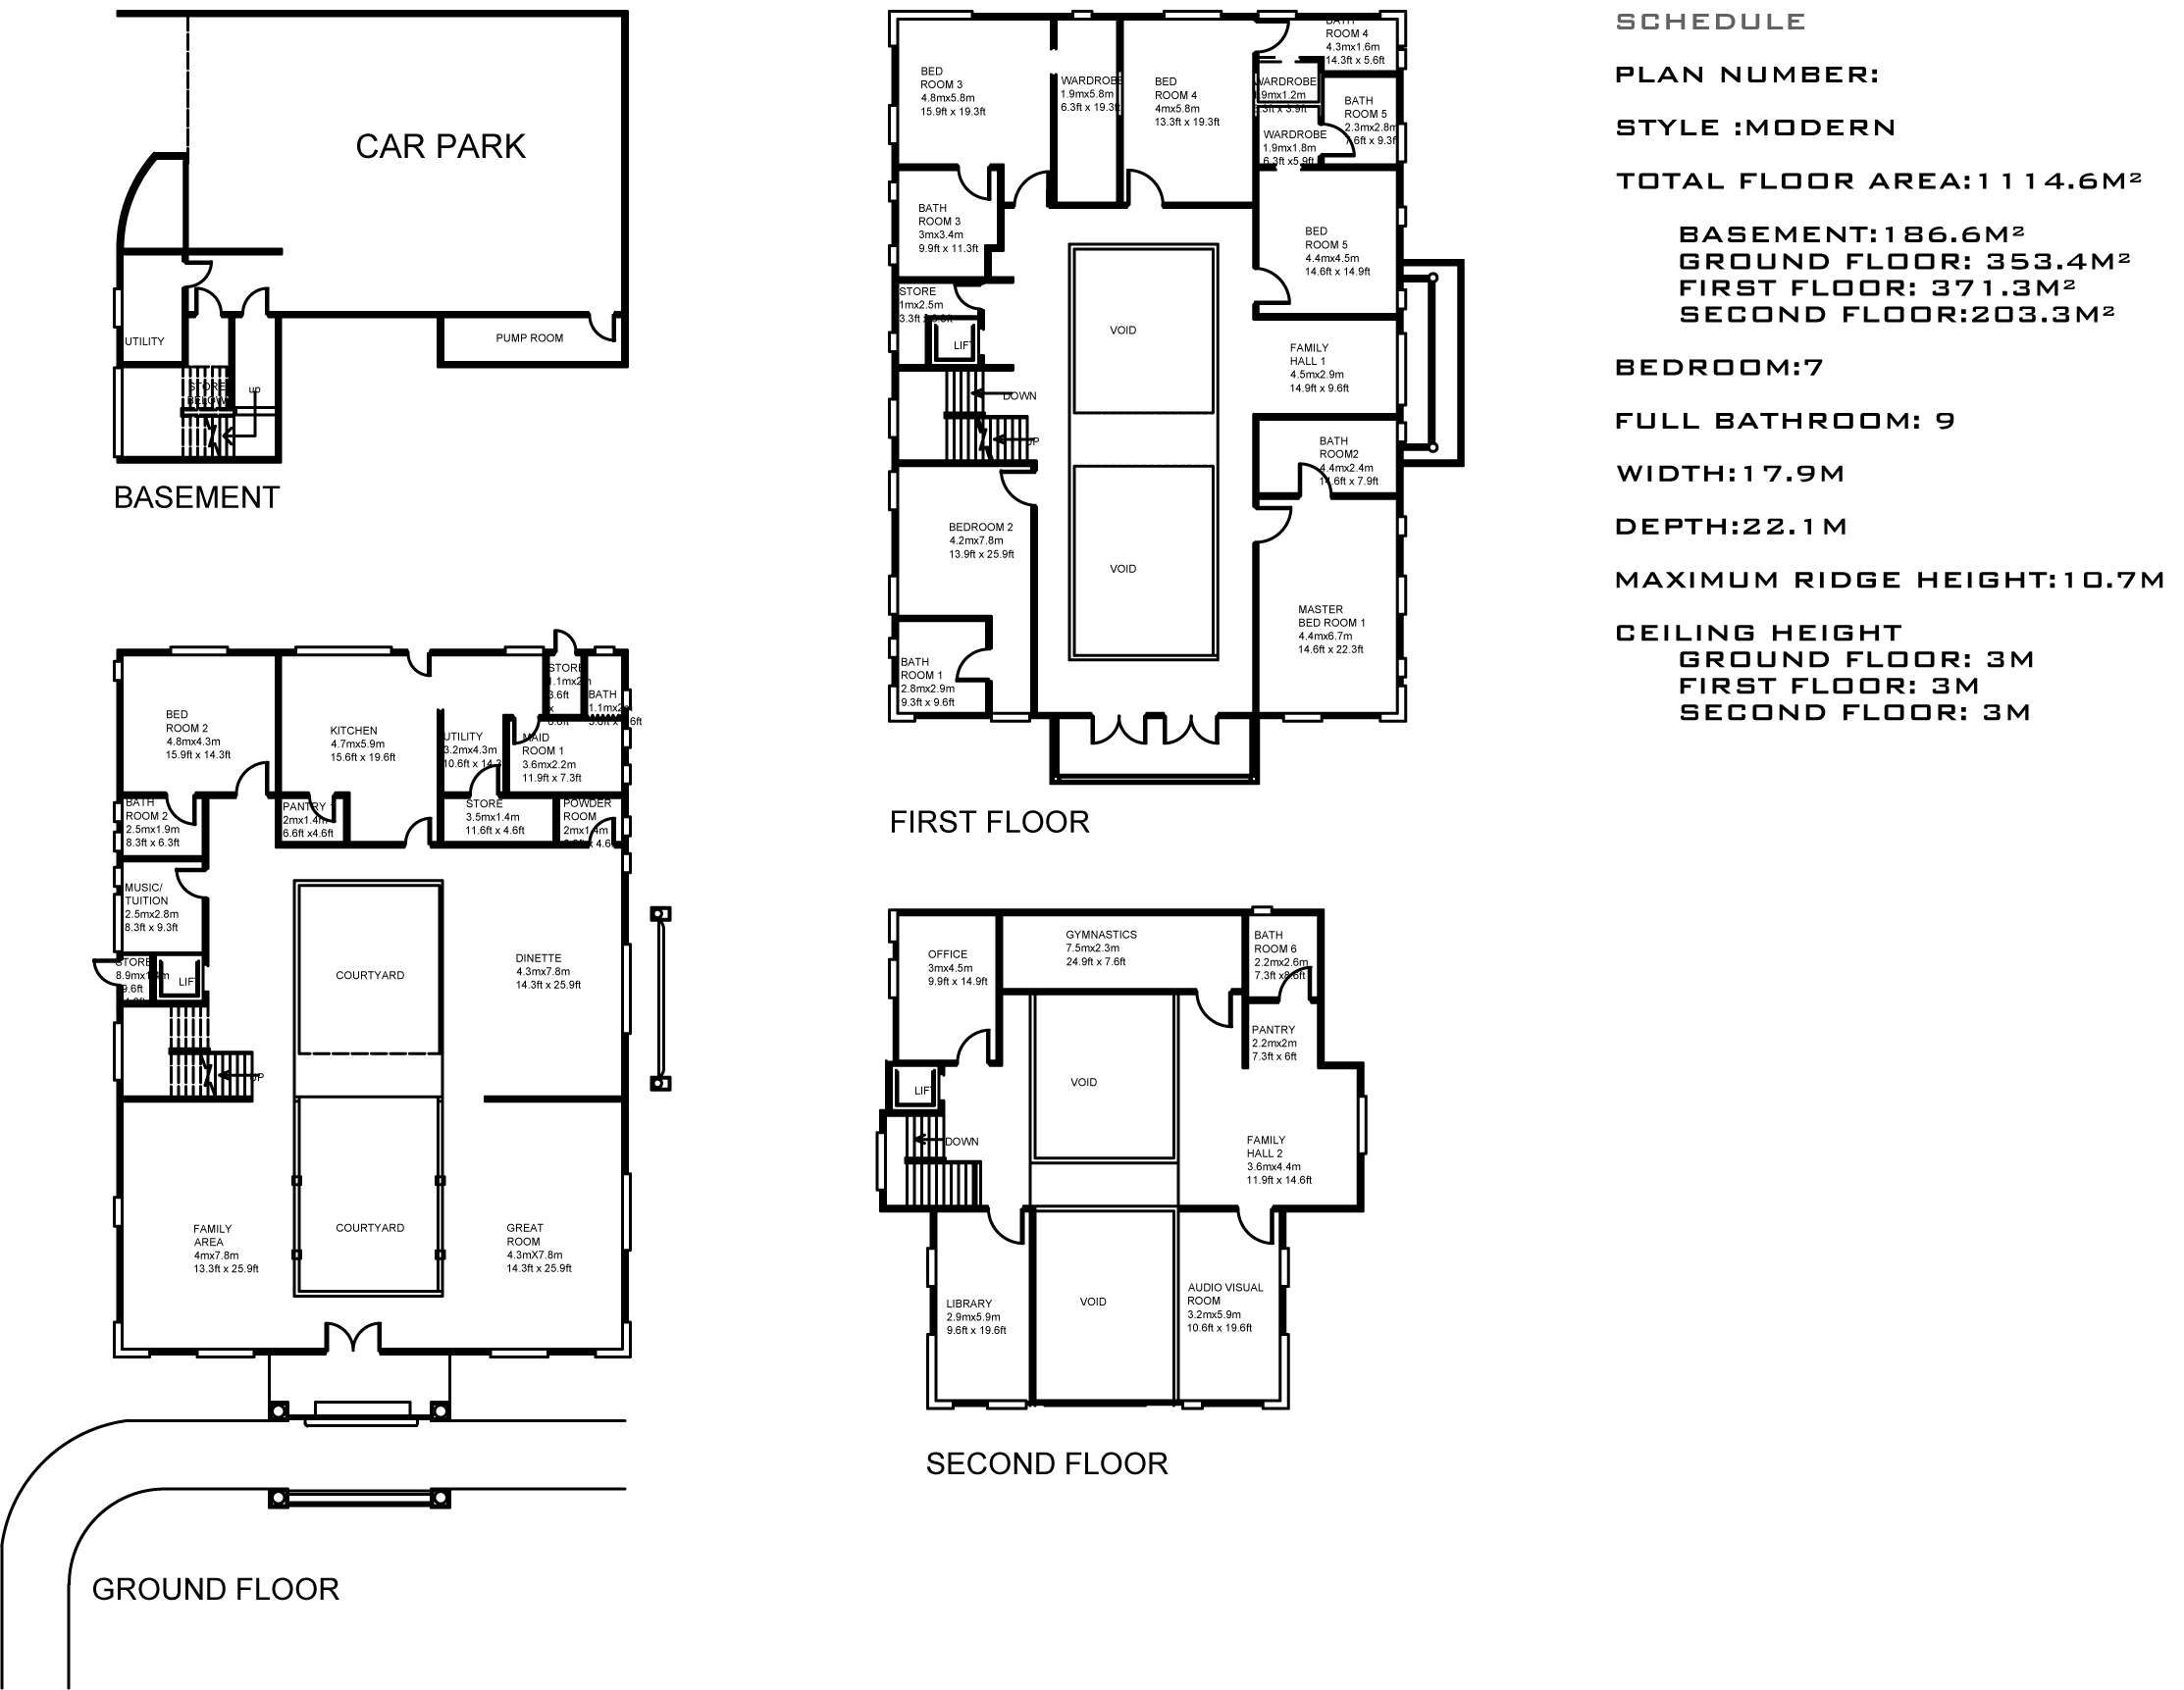 36 Pictures Of Practical Magic House Floor Plan For House Plan Cottage House Plans Practical Magic House House Floor Plans House Layout Plans